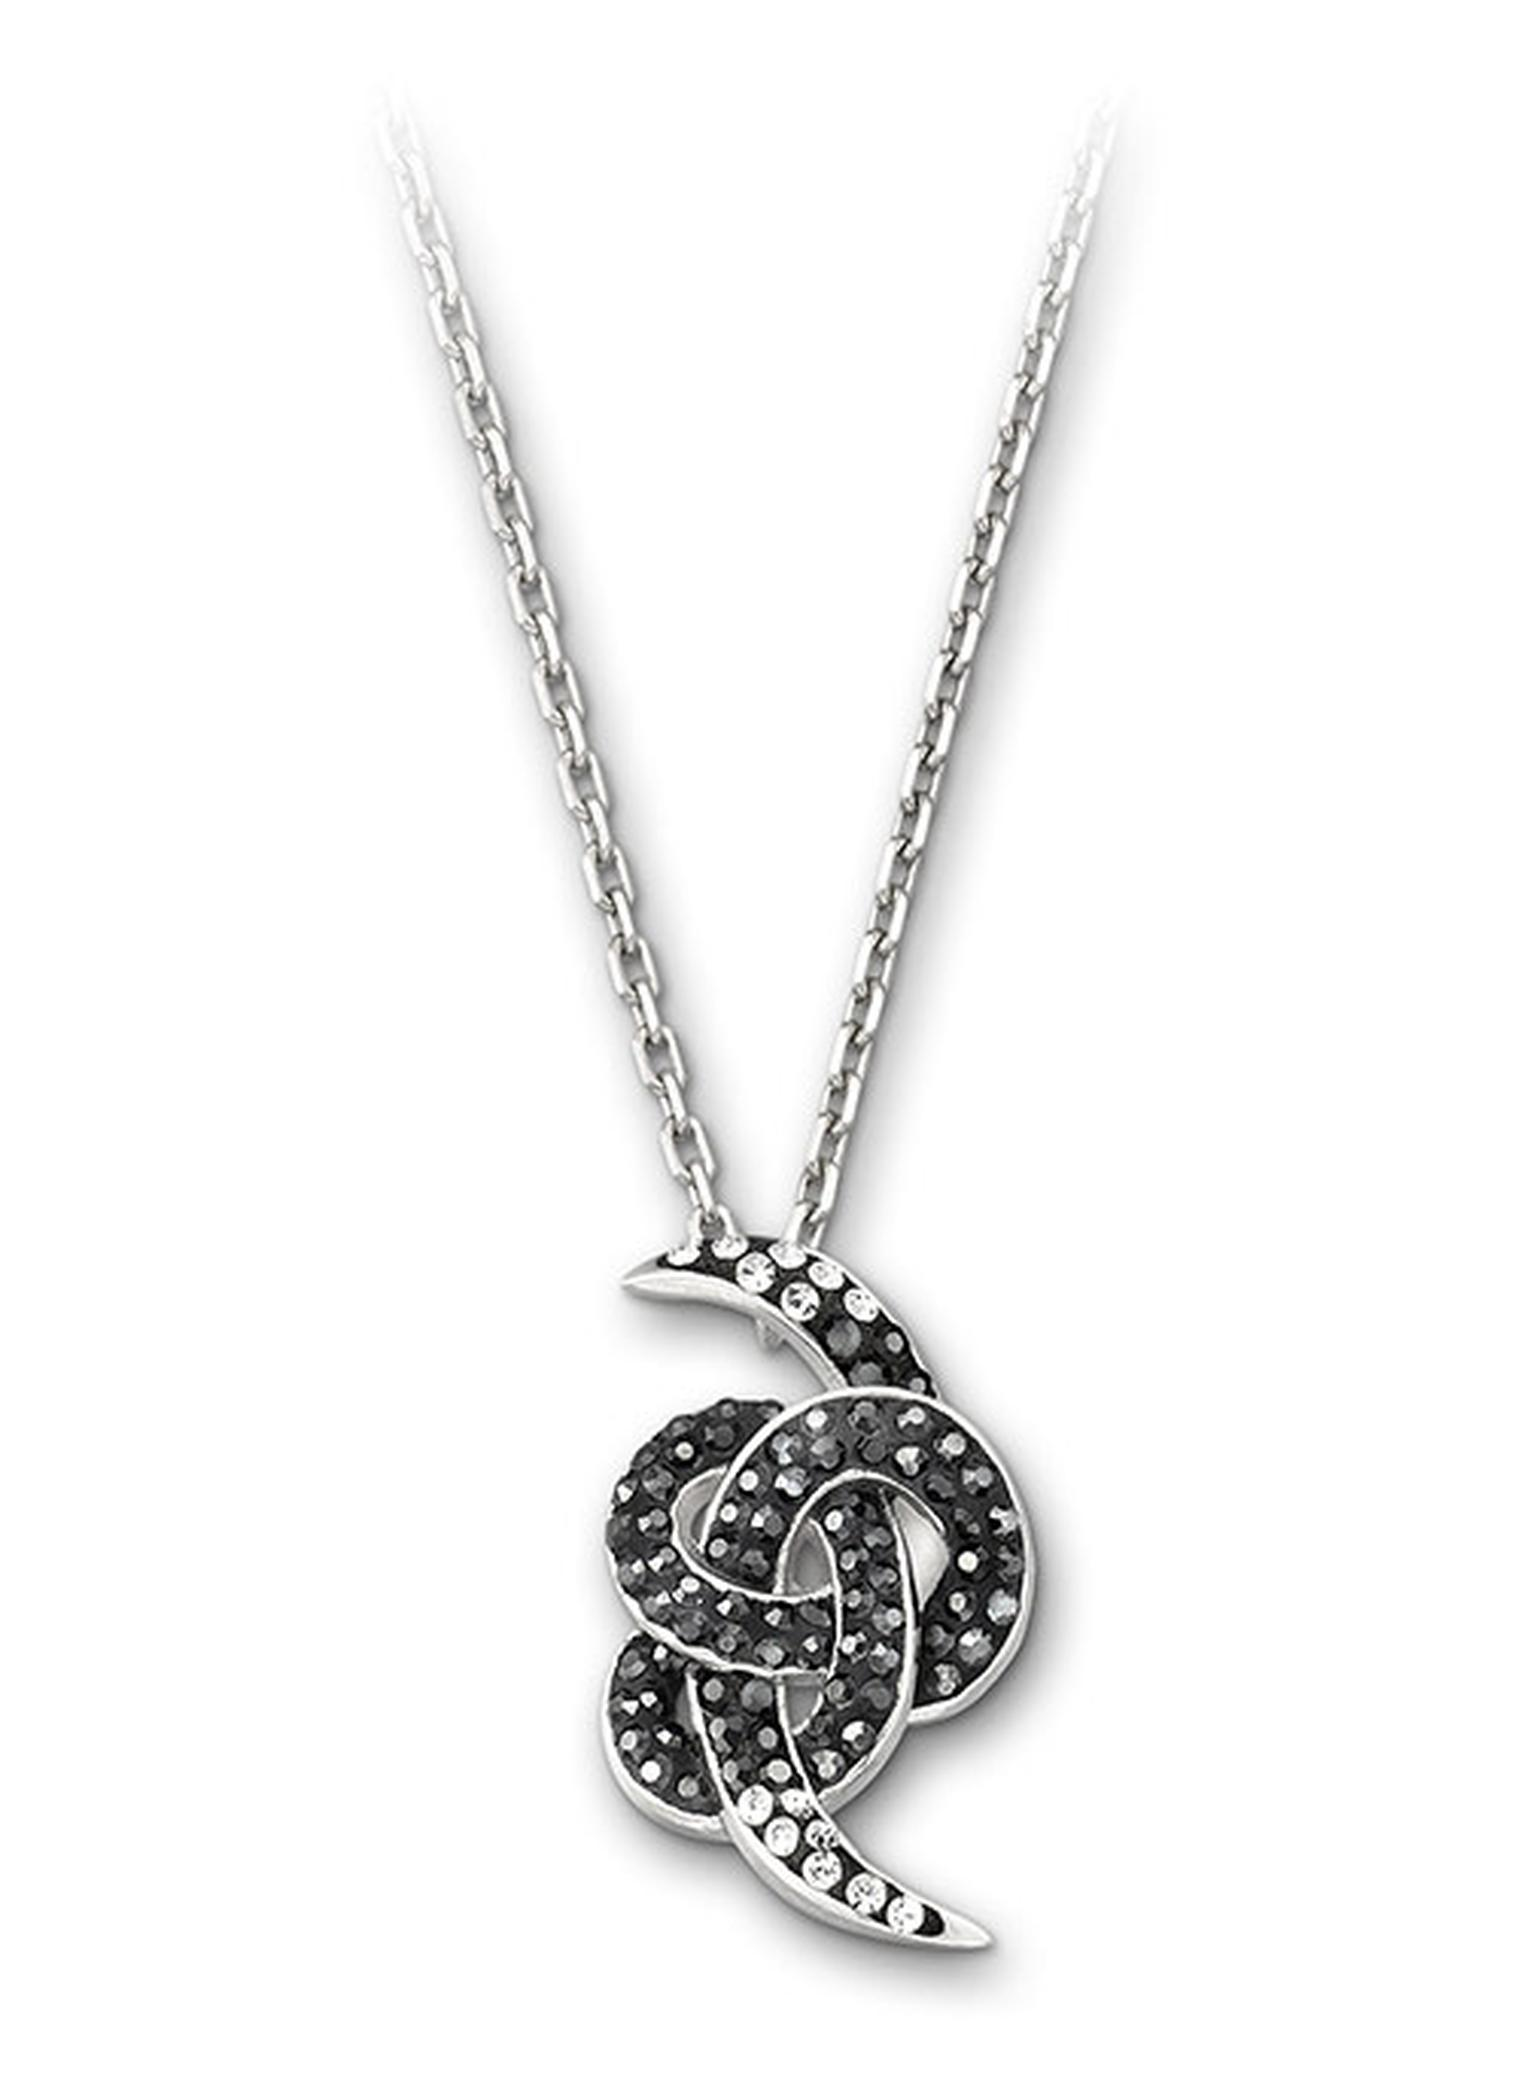 Stephen-Webster-Love-Knot-pendant.jpg